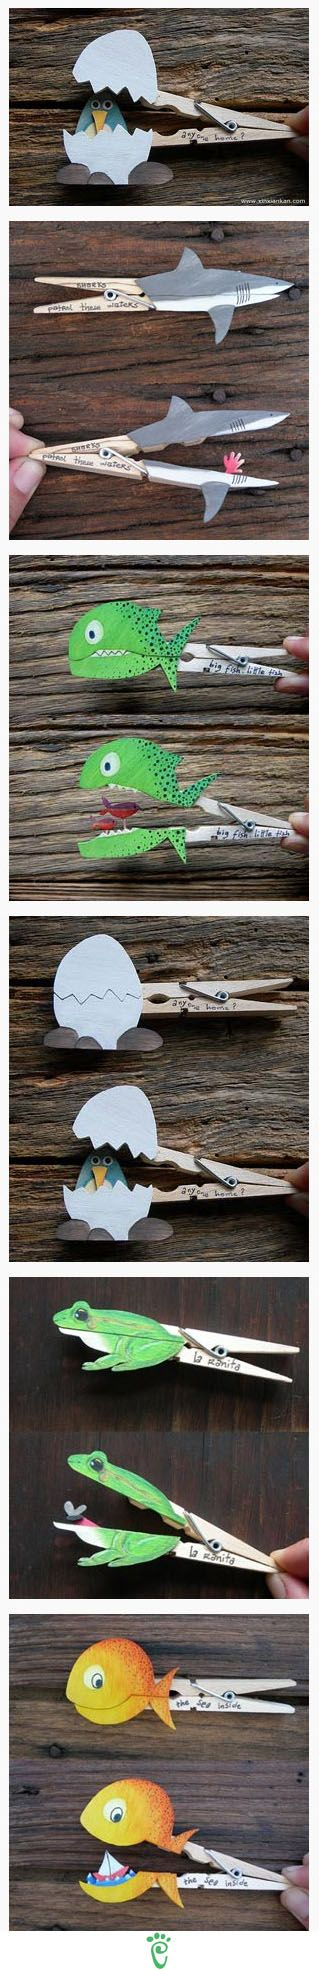 Cute clothespin animals!